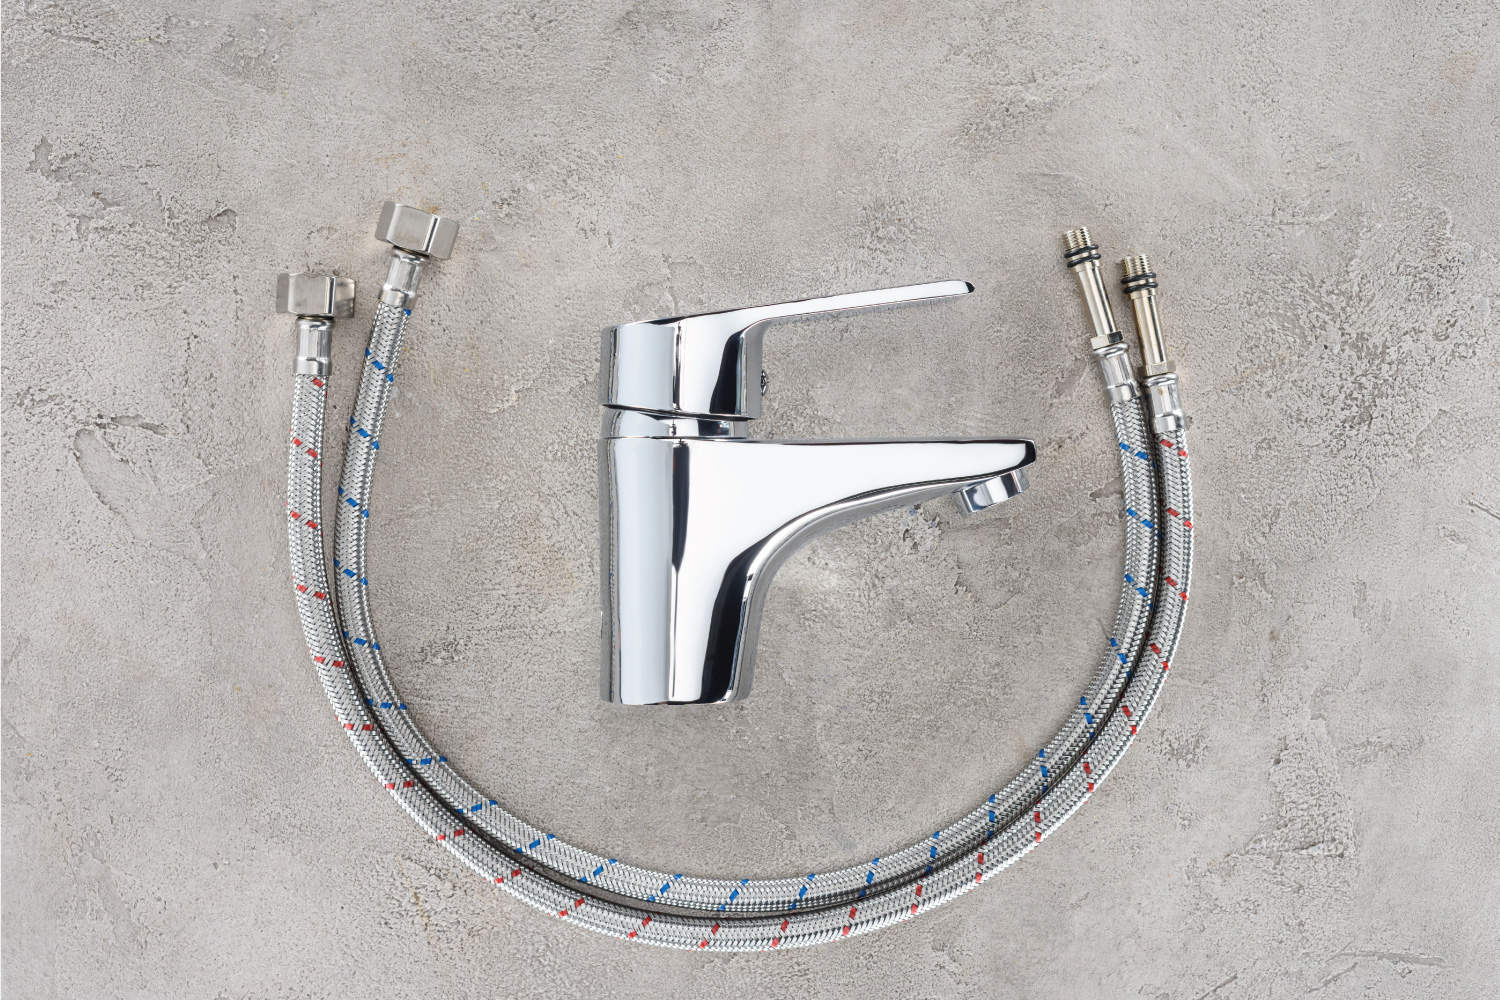 Top view of water blender with flexible pipes on concrete surface